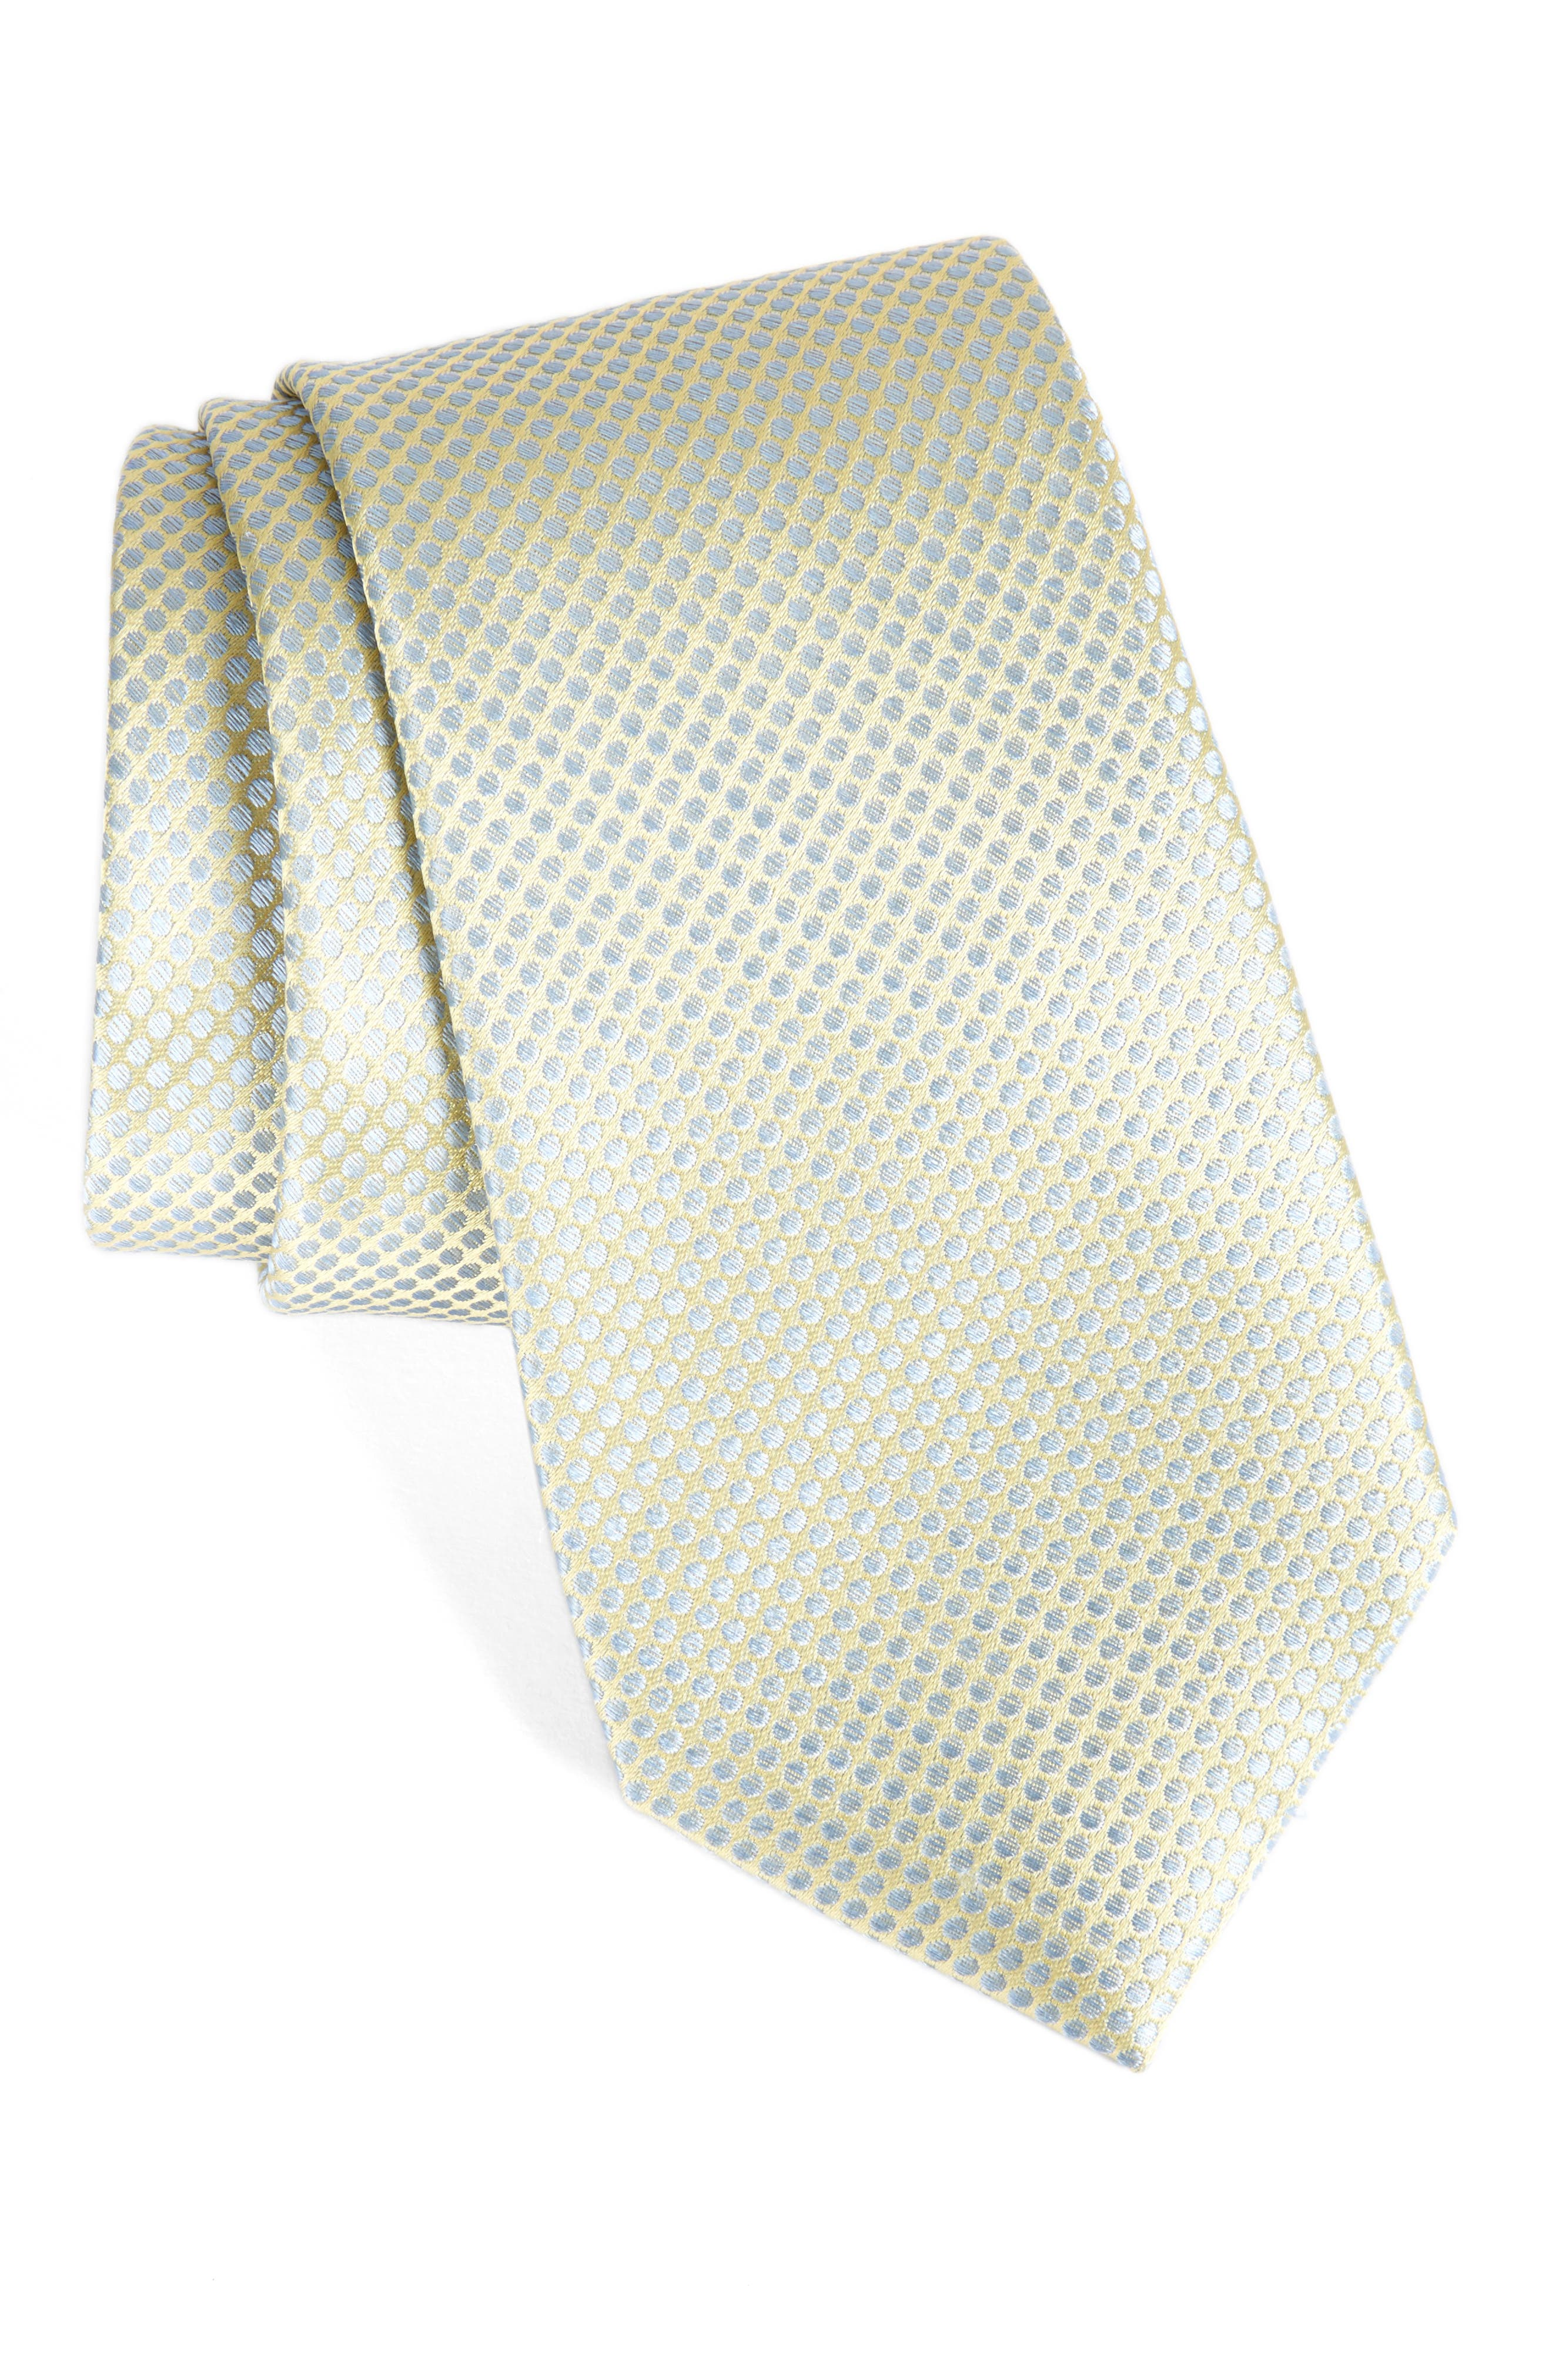 Saturated Dot Silk Tie,                             Main thumbnail 1, color,                             Yellow